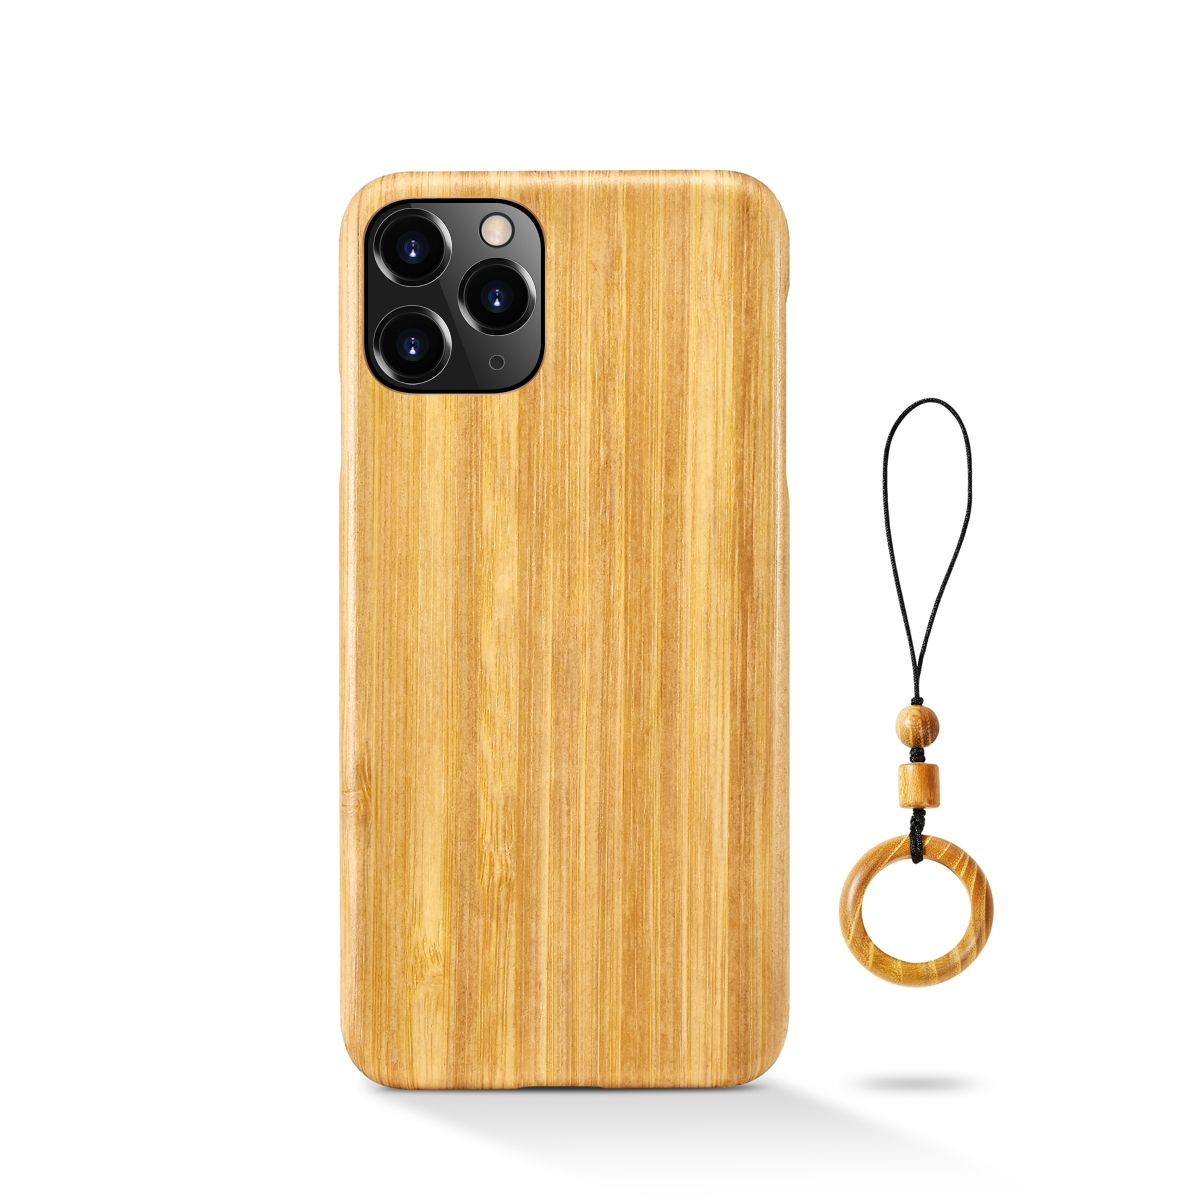 100% Natural Real Wood Bamboo Hard Slim Wooden Case for iPhone 12 pro